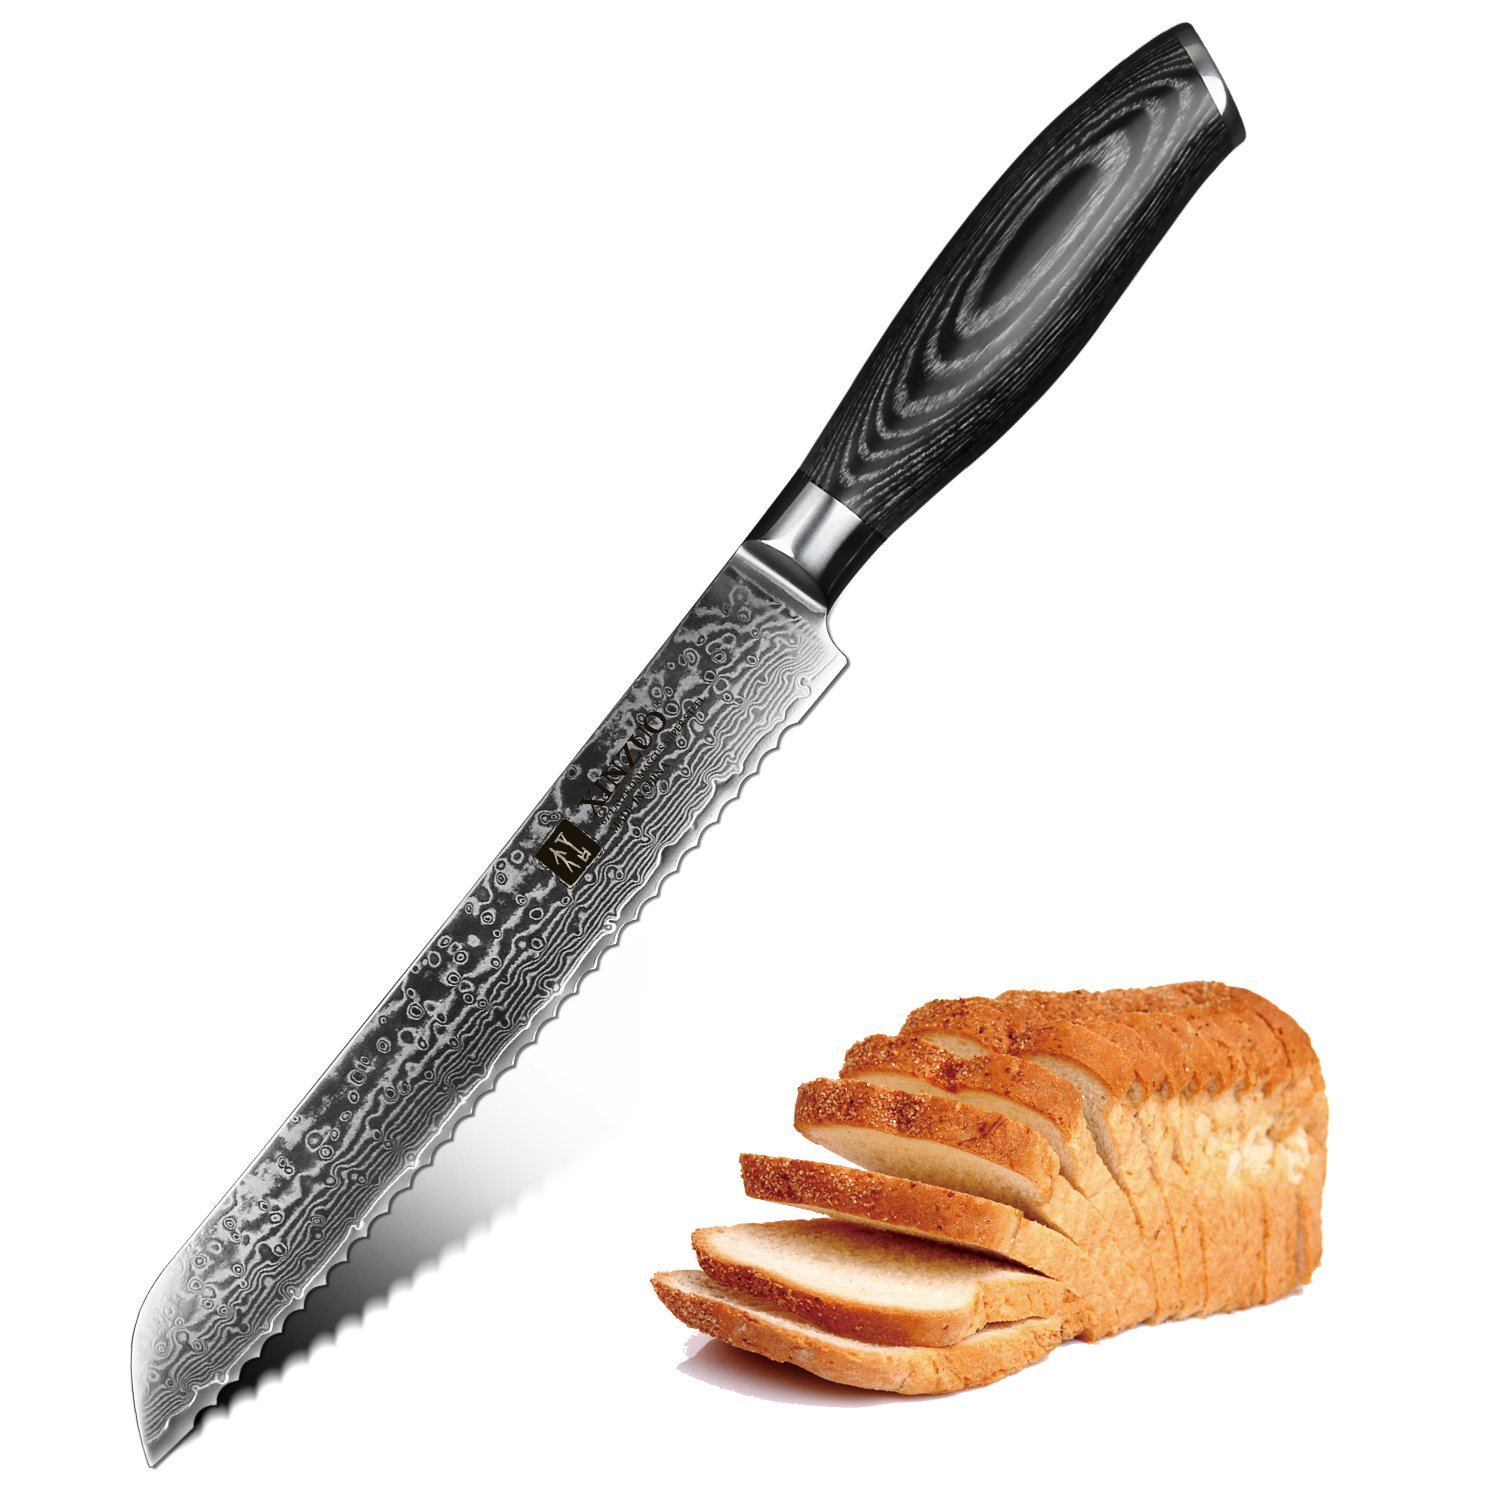 XINZUO 8 Inch Bread Knife High Carbon 67 Layer Japanese VG10 Damascus Super Steel Kitchen Knife Professional Chef's Knife with Pakkawood Handle - Ya Series